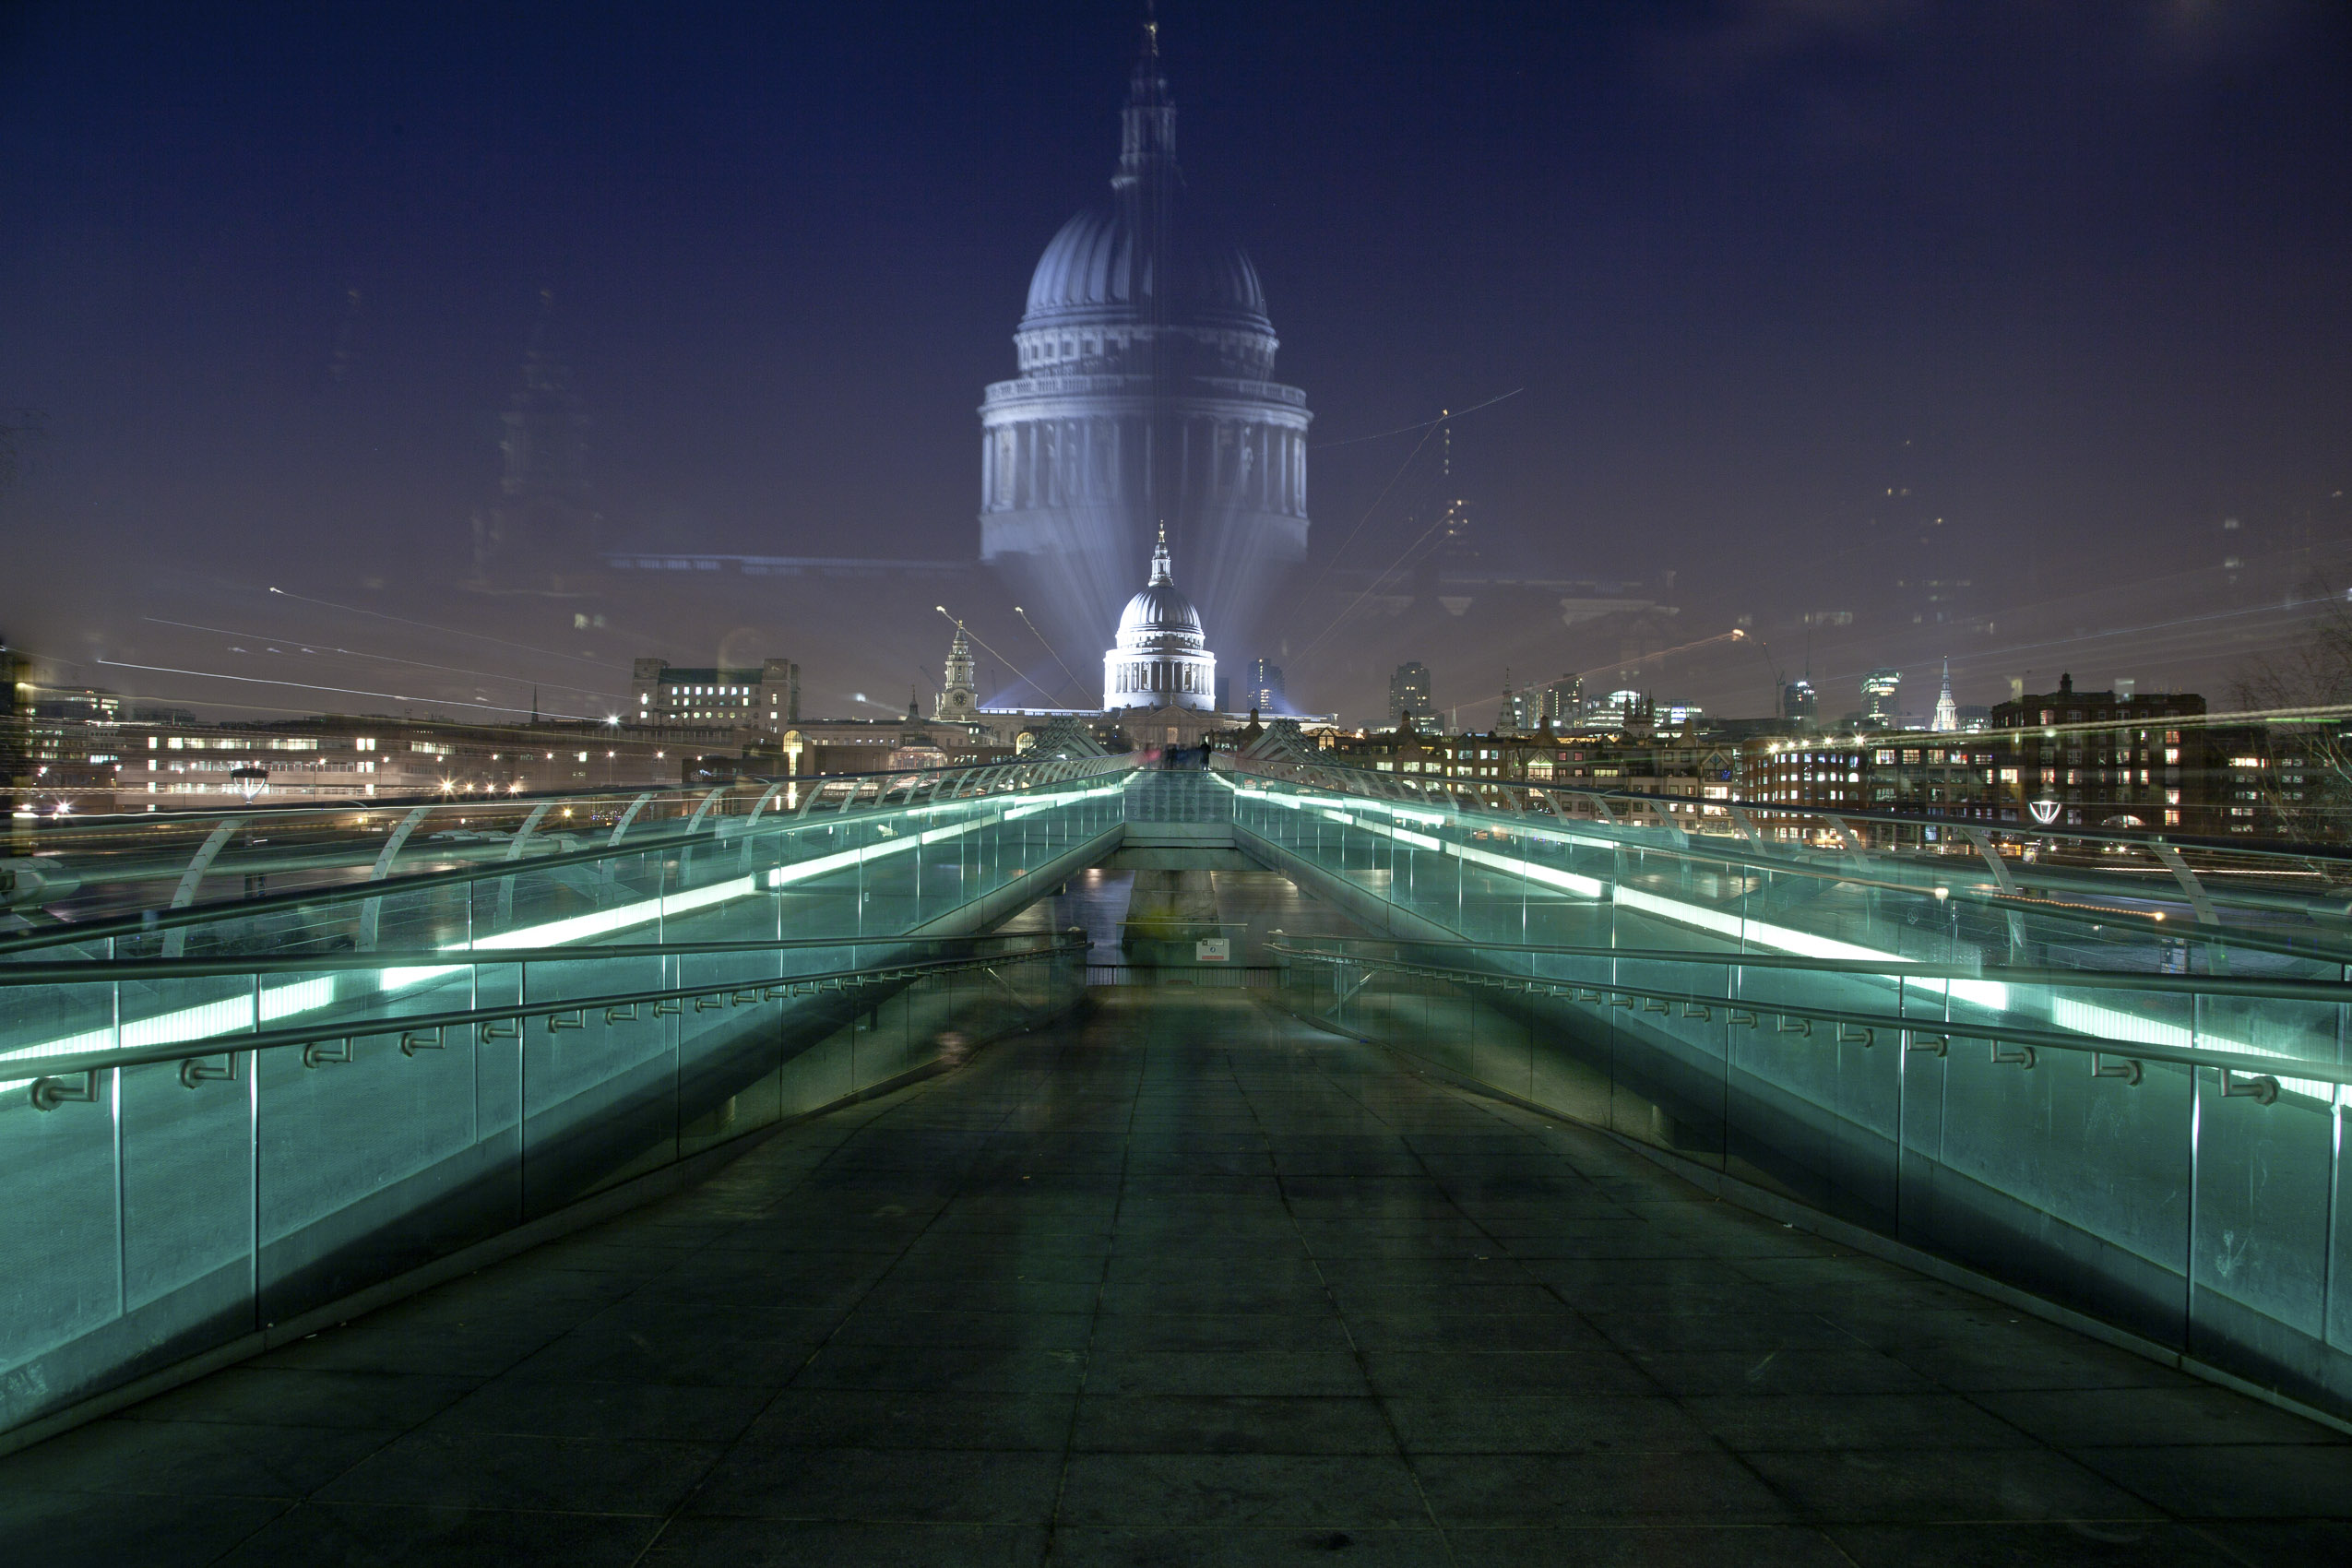 London_st_pauls_cathedral_abstract_millenium_bridge.jpg